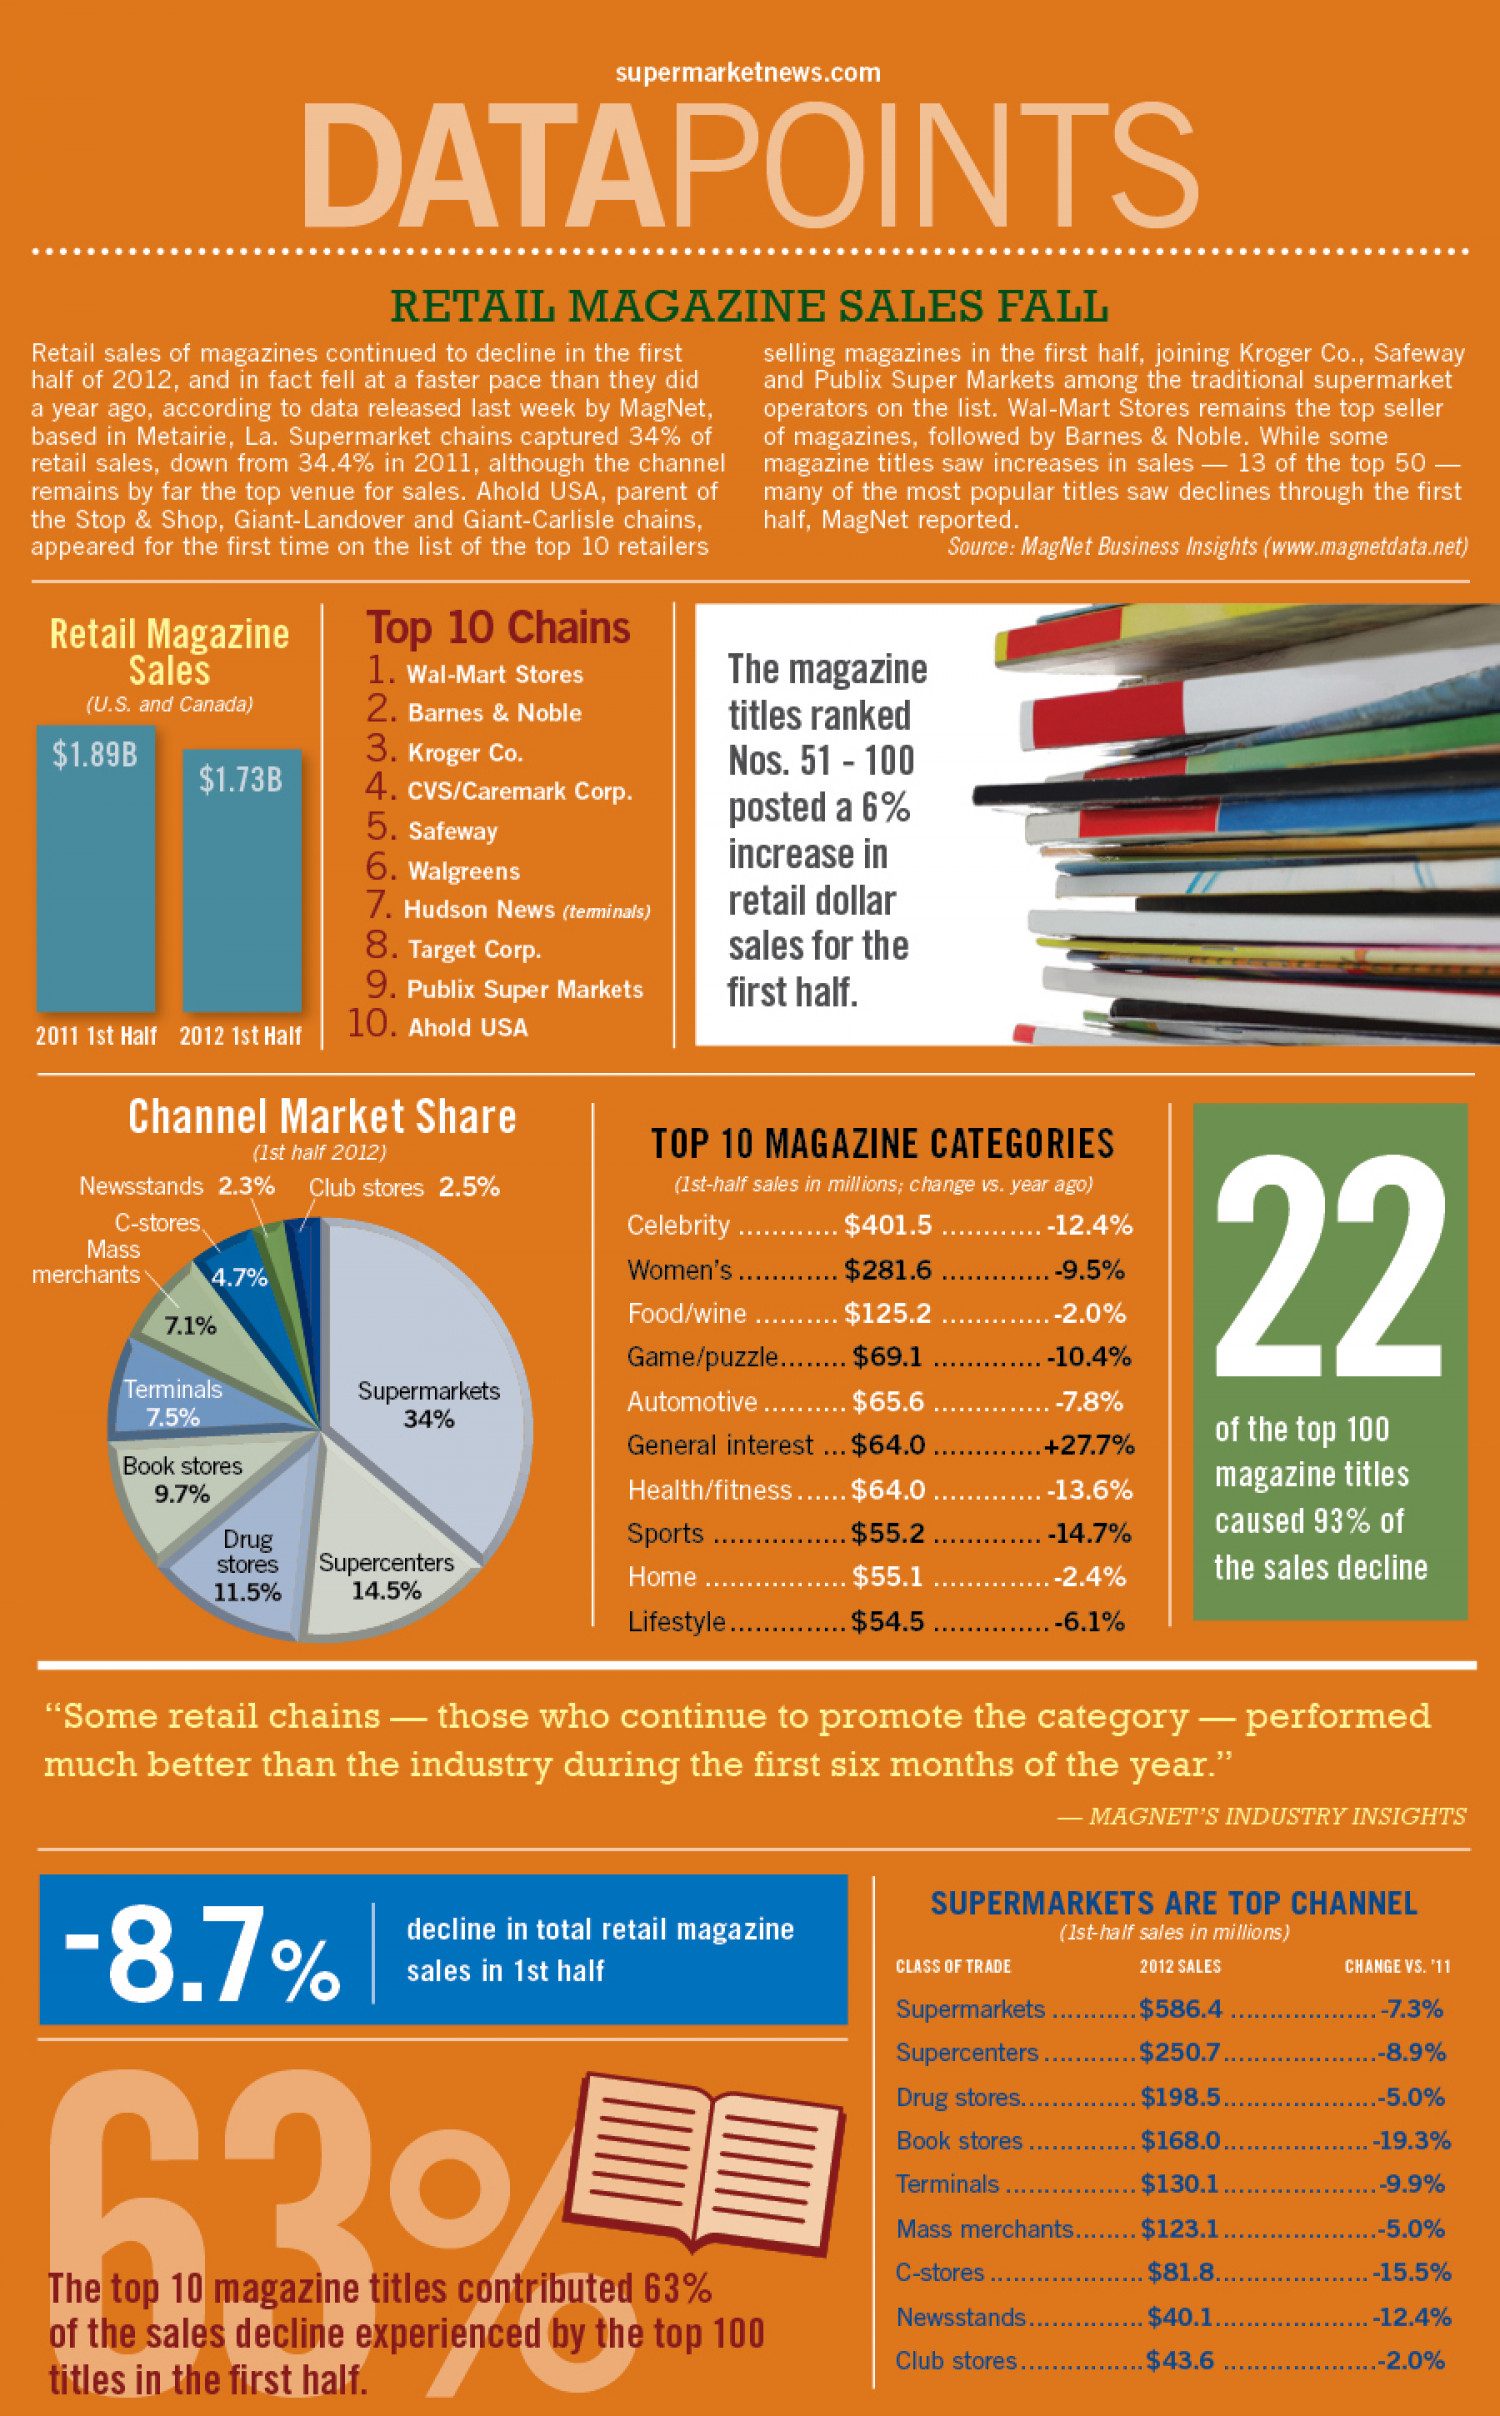 Retail Magazine Sales Fall Infographic